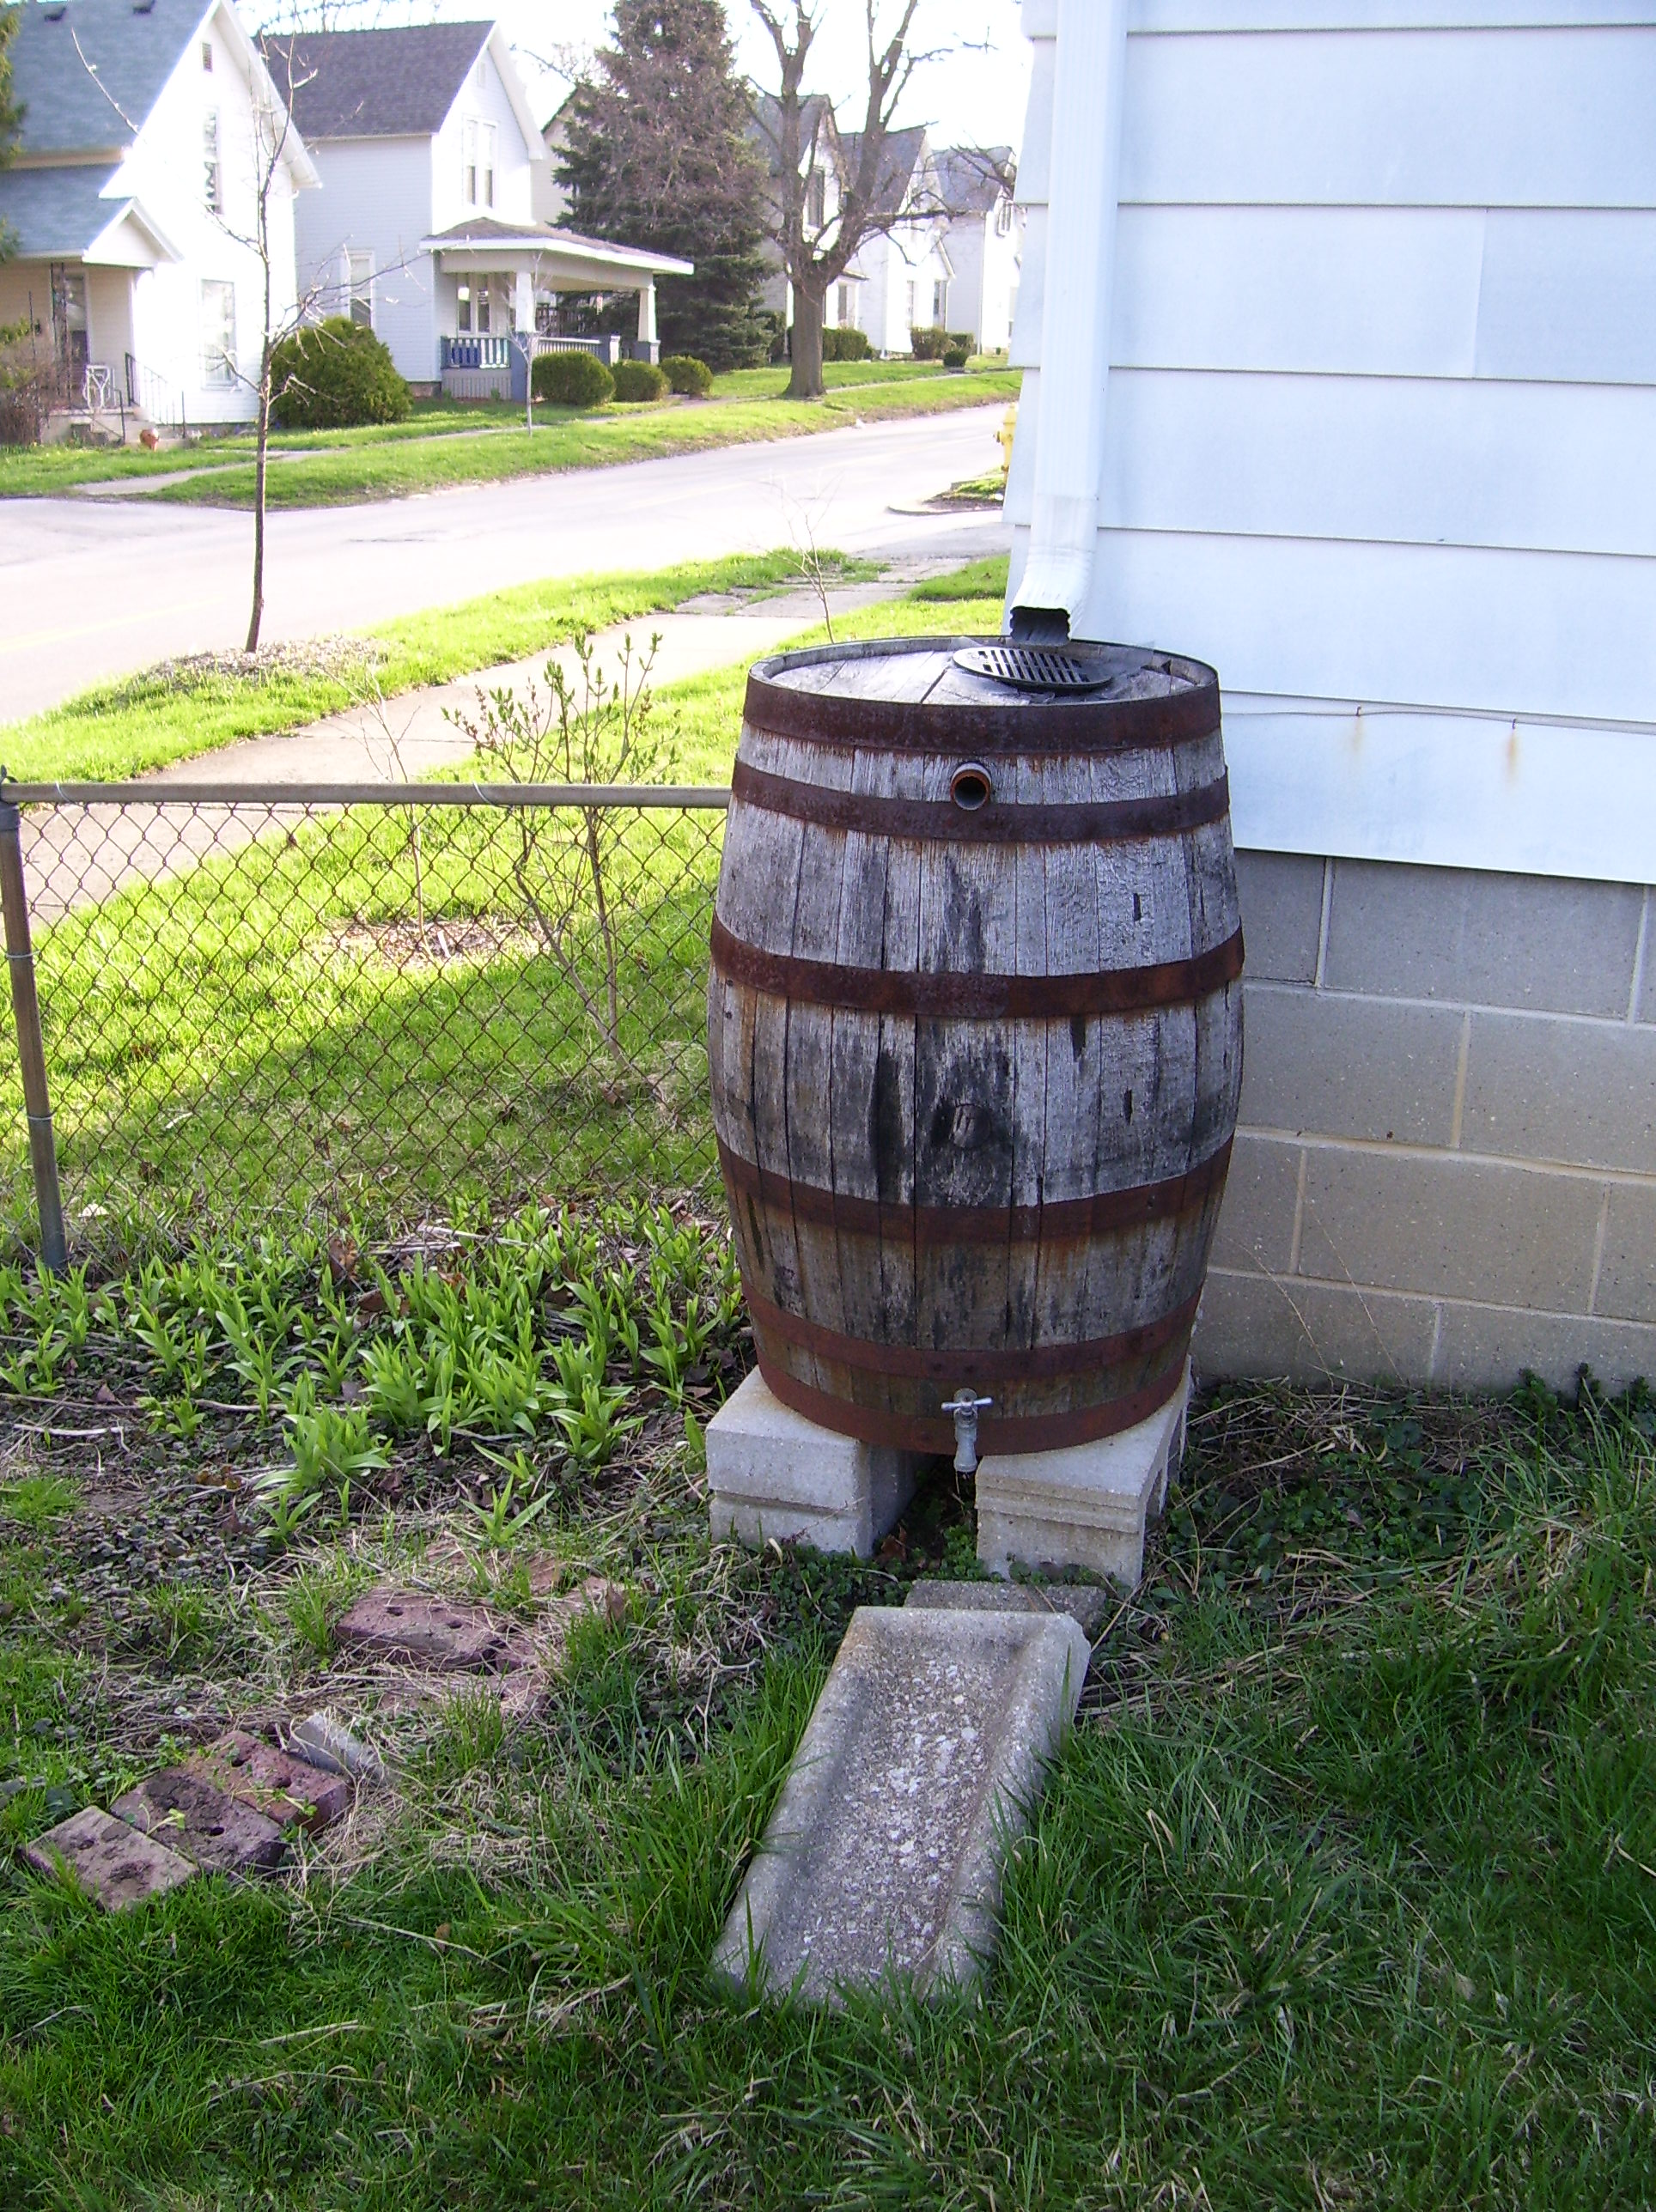 If You Pay The Greater Elkhart County Stormwater Utility Fee (billed With  Your Property Taxes) You Are Eligible For The Rain Garden/Rain Barrel  Incentive ...